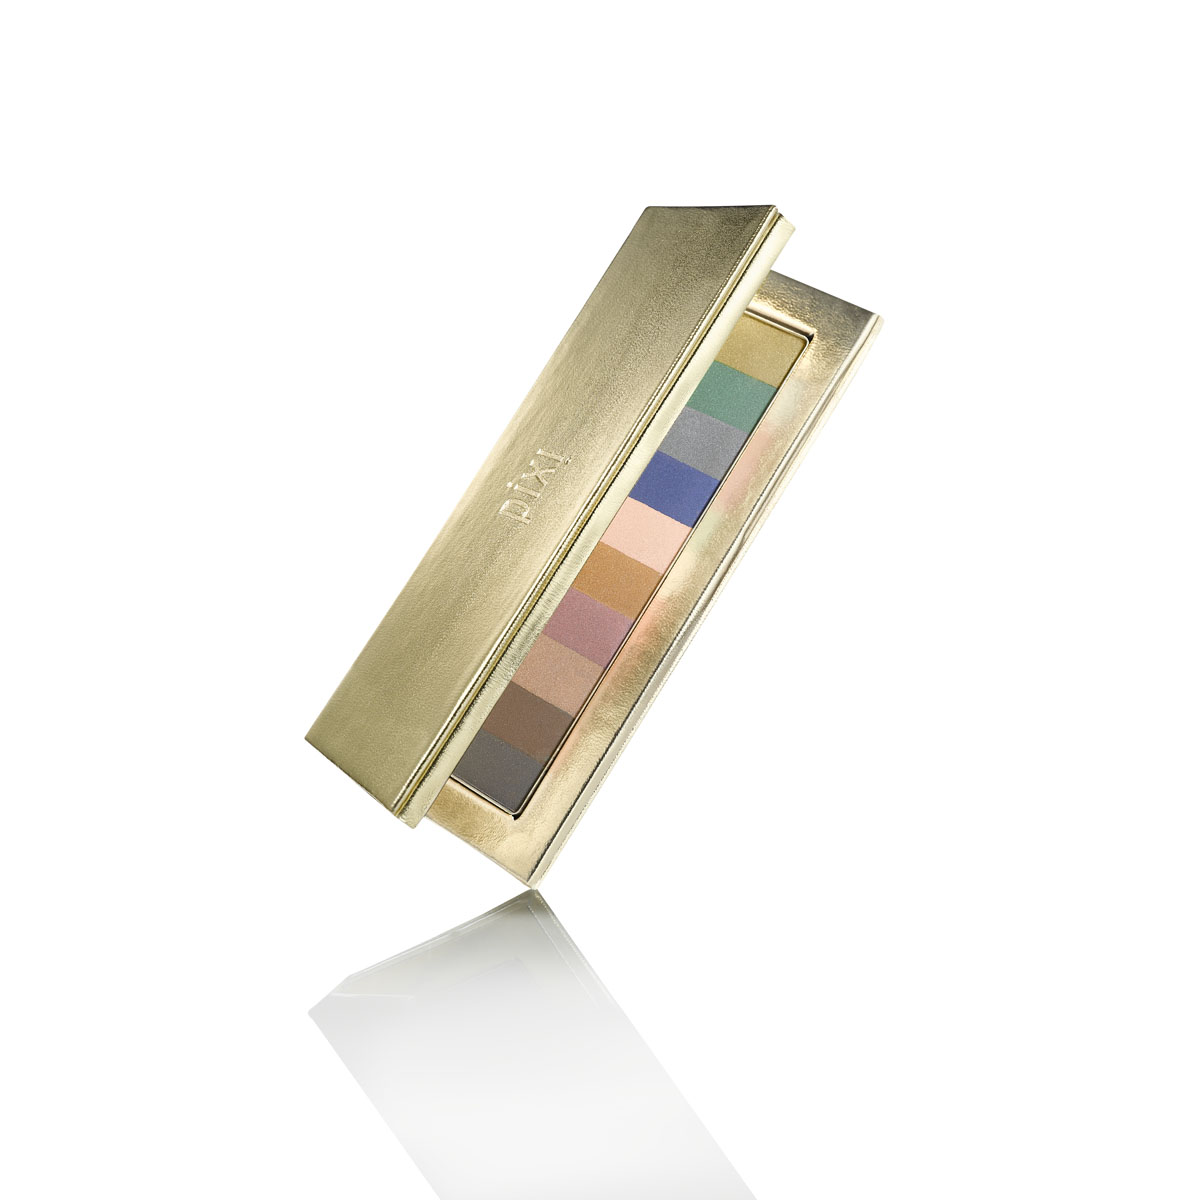 Pixi by Petra Lumi Lux Eye Palette ($38) — 20 shades in this kit.